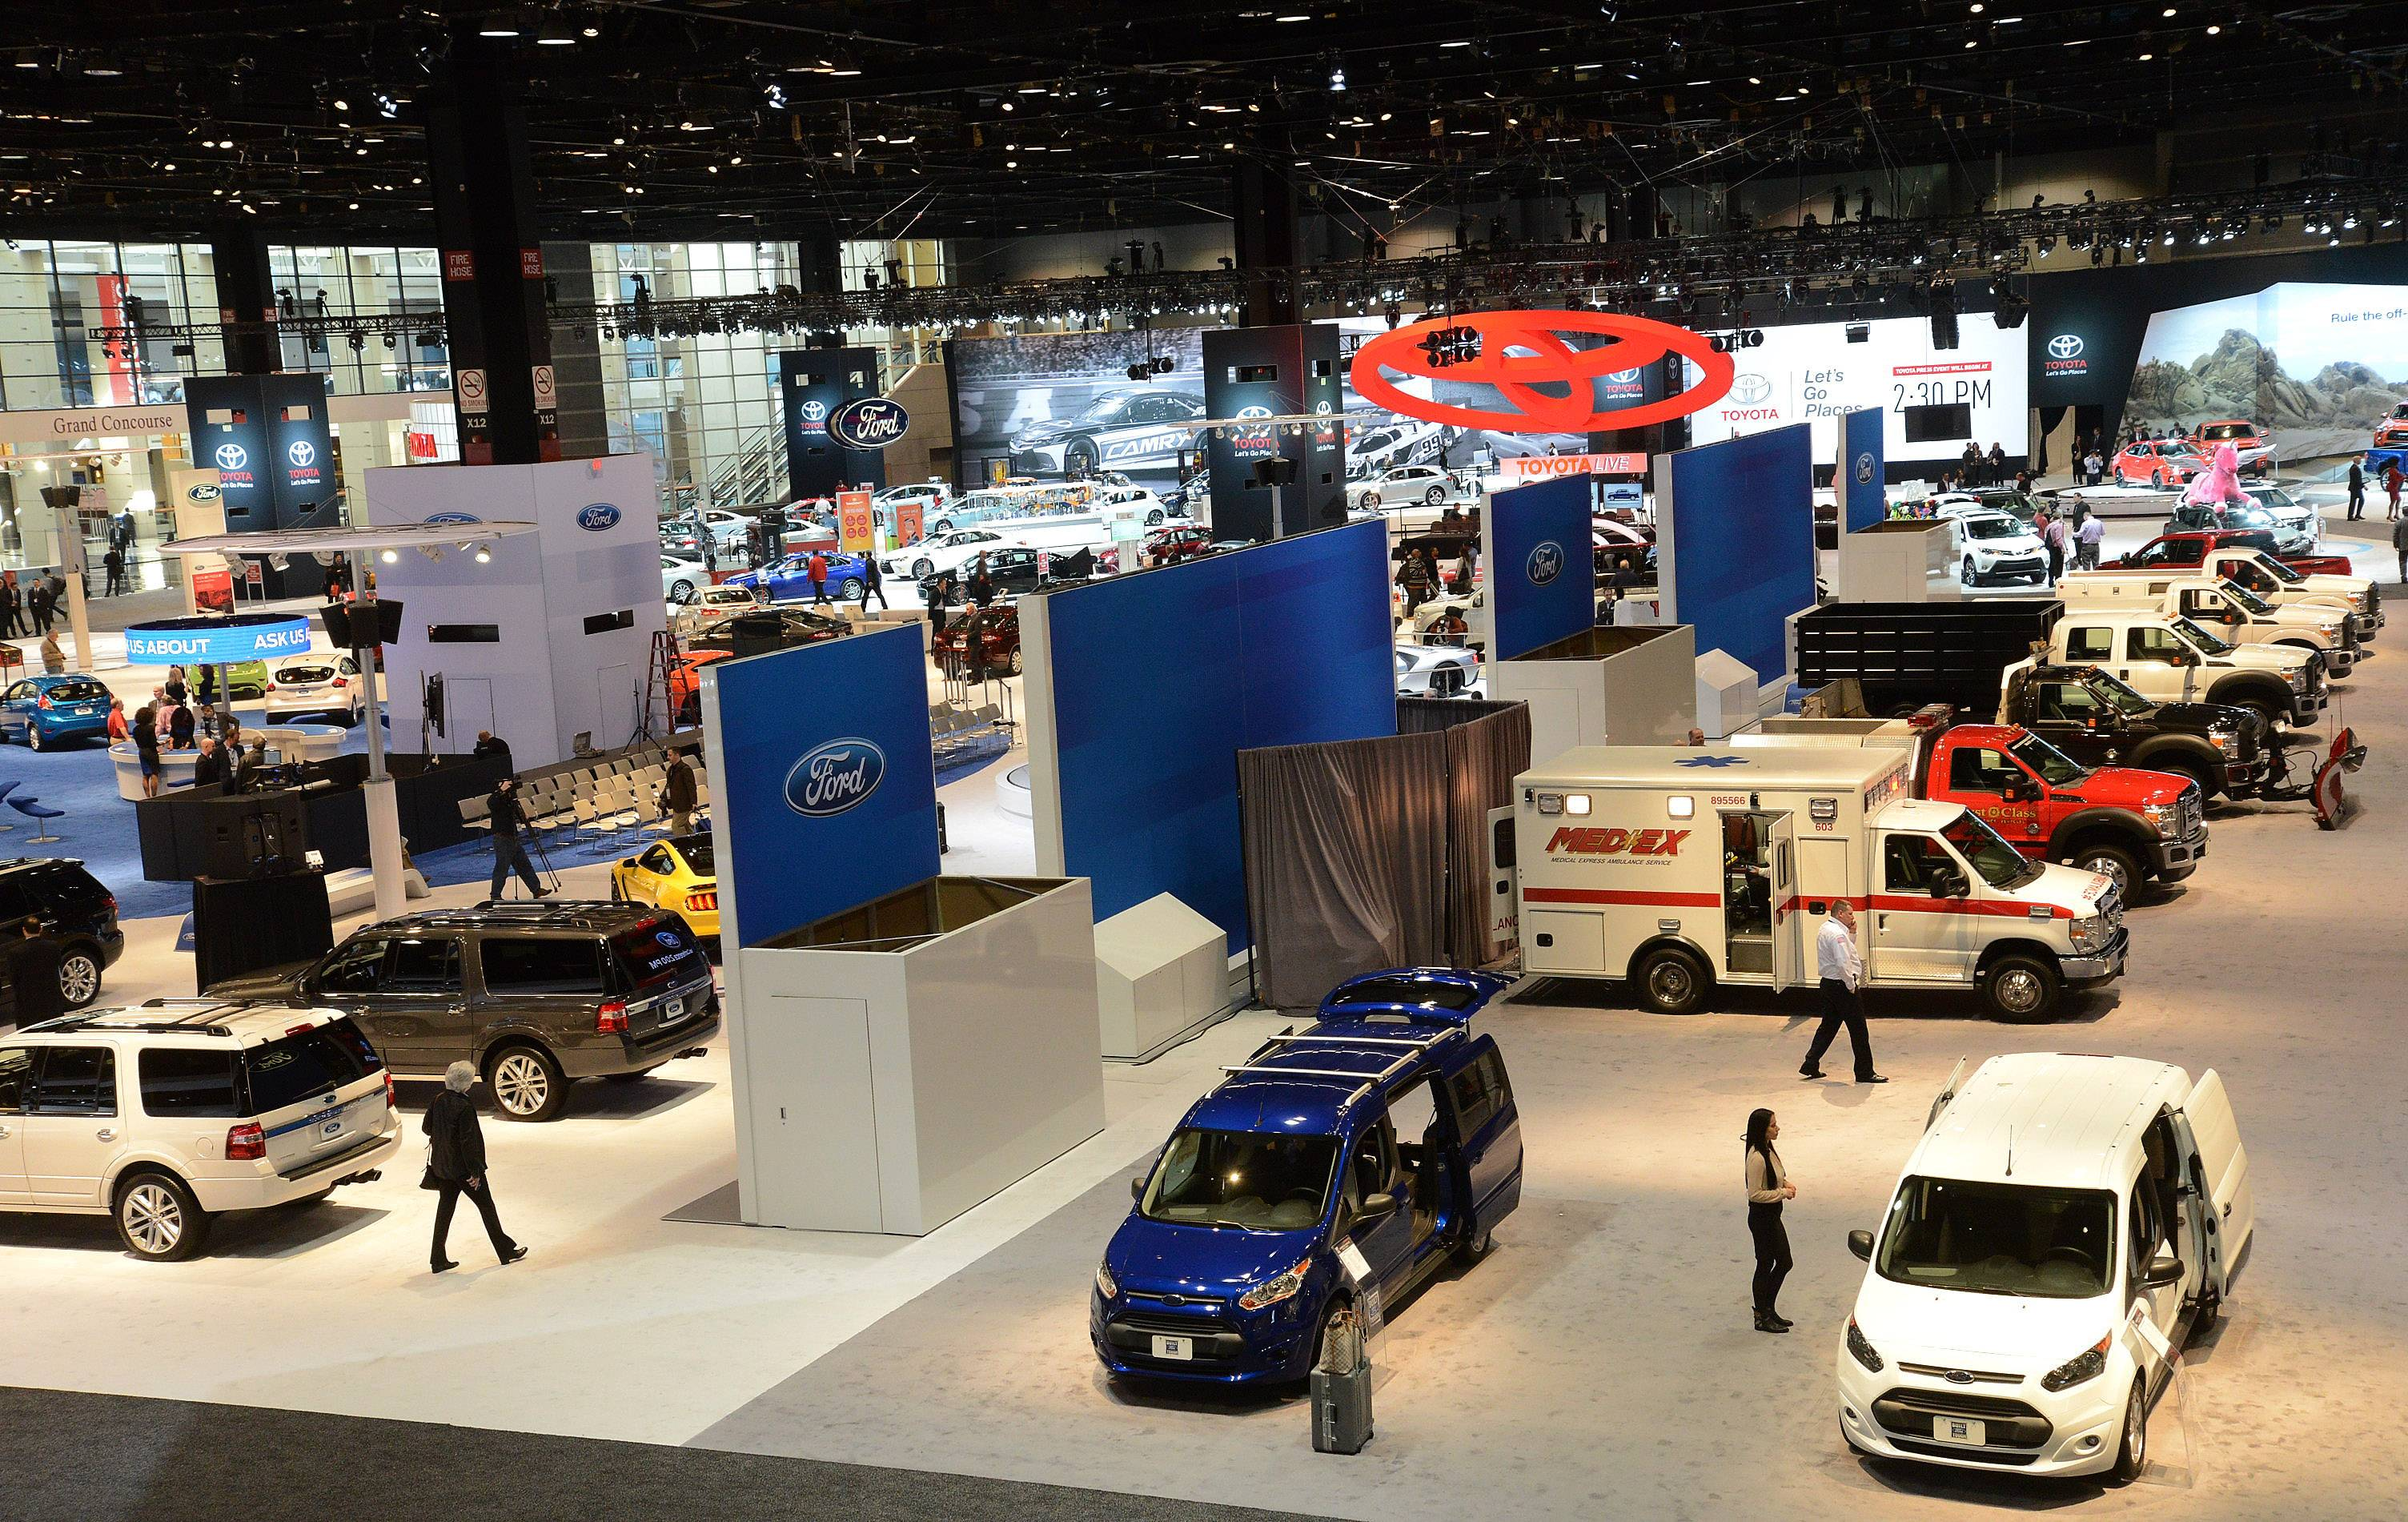 The 2015 Chicago Auto Show aims to please consumers.